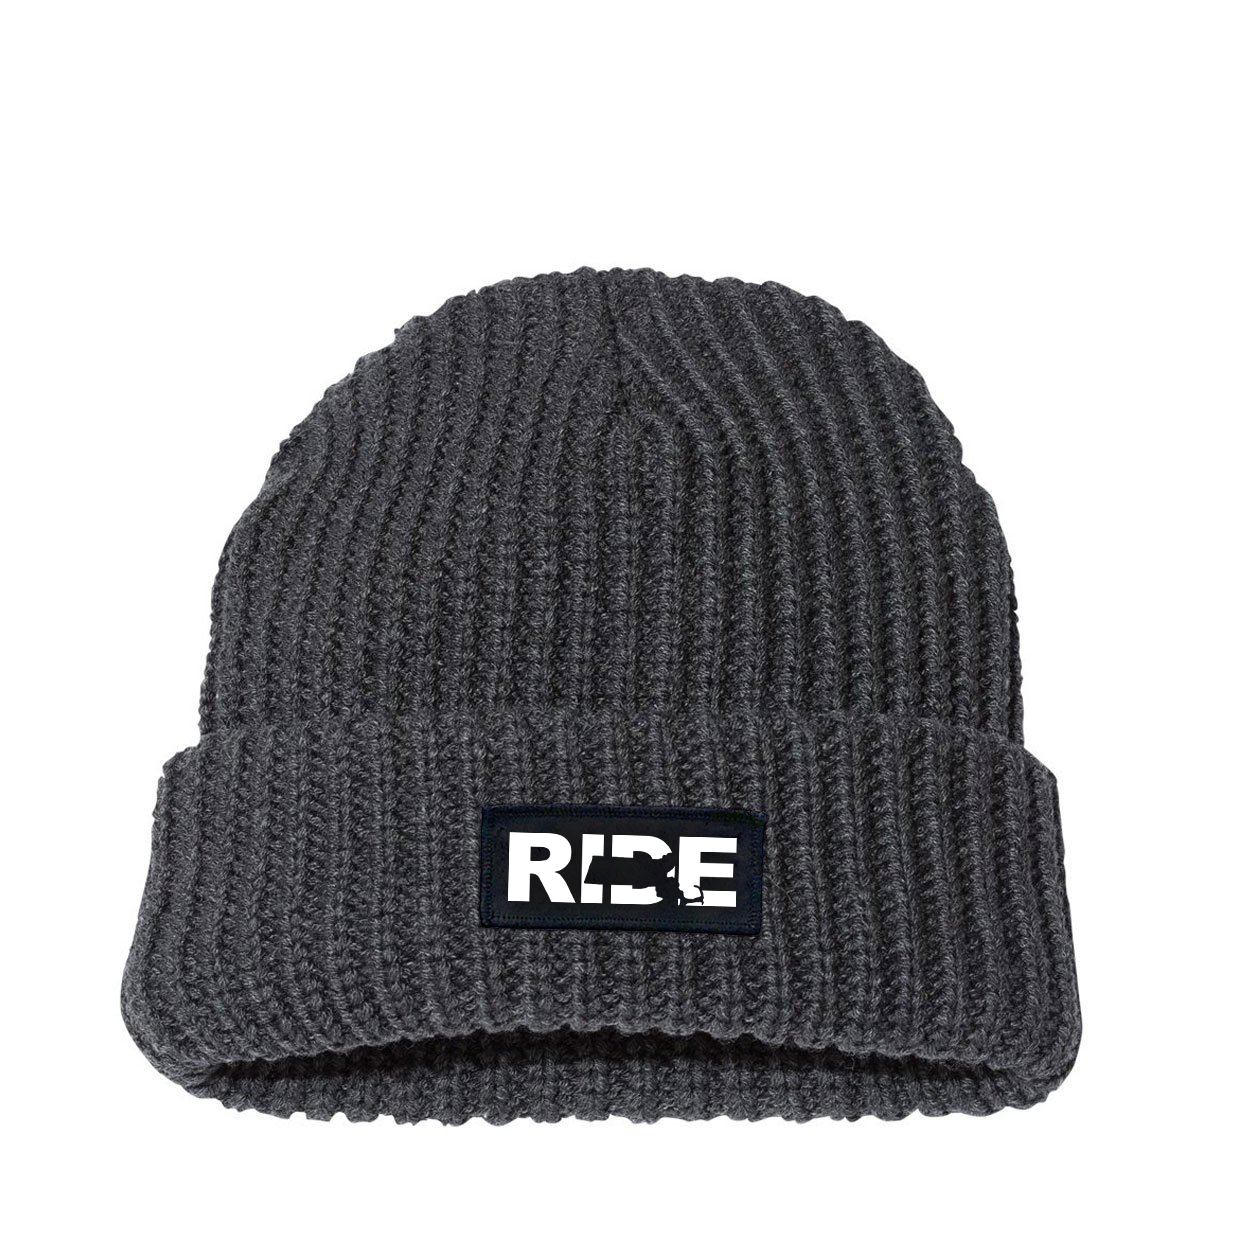 Ride Massachusetts Night Out Woven Patch Roll Up Jumbo Chunky Knit Beanie Charcoal (White Logo)